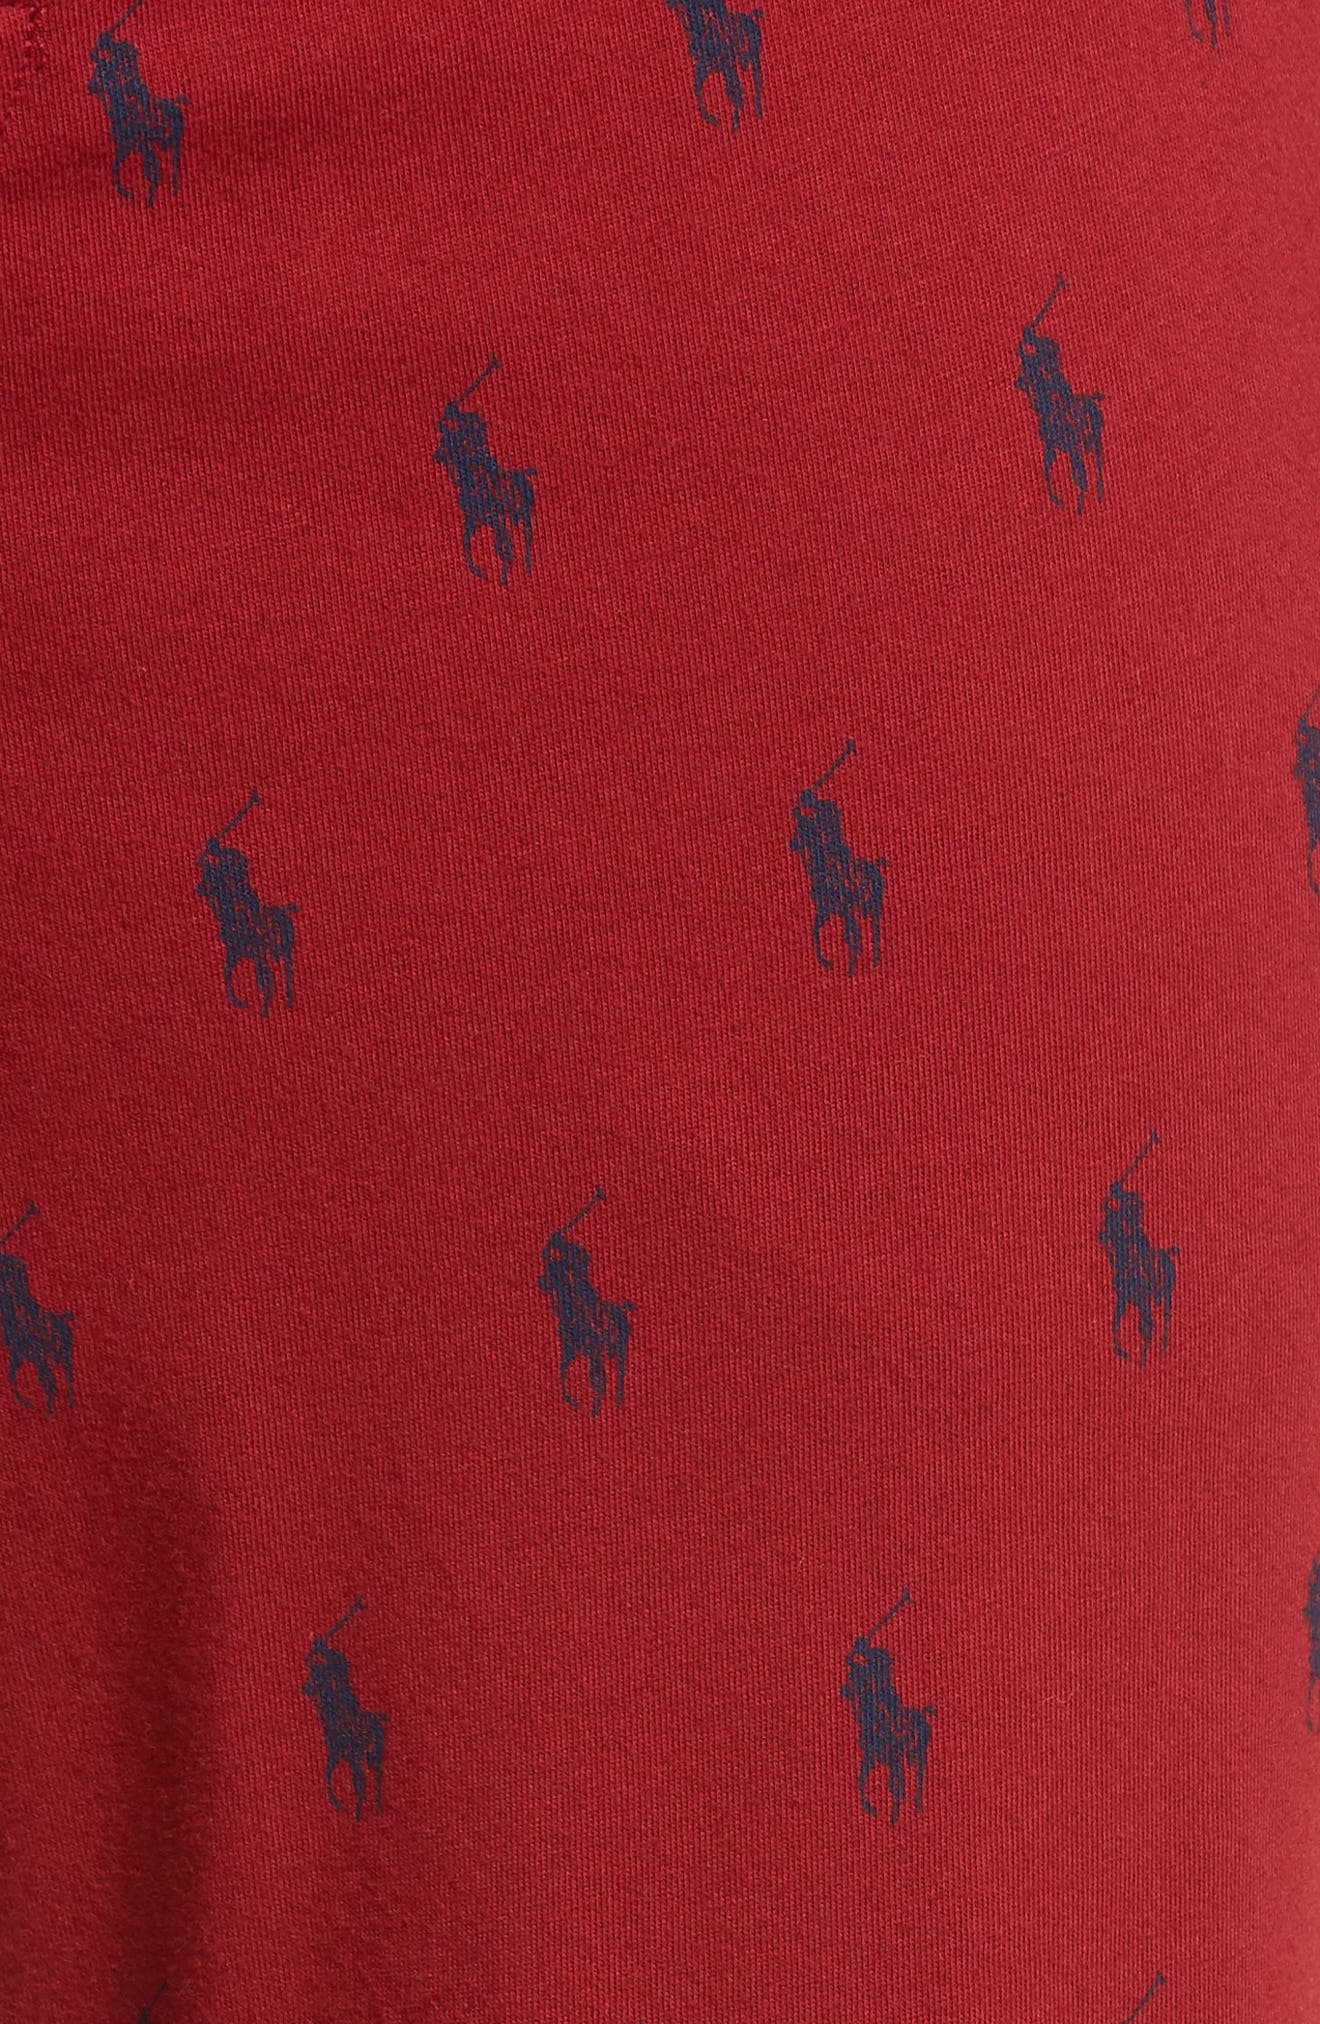 Cotton Lounge Pants,                             Alternate thumbnail 5, color,                             HOLIDAY RED/ CRUISE NAVY